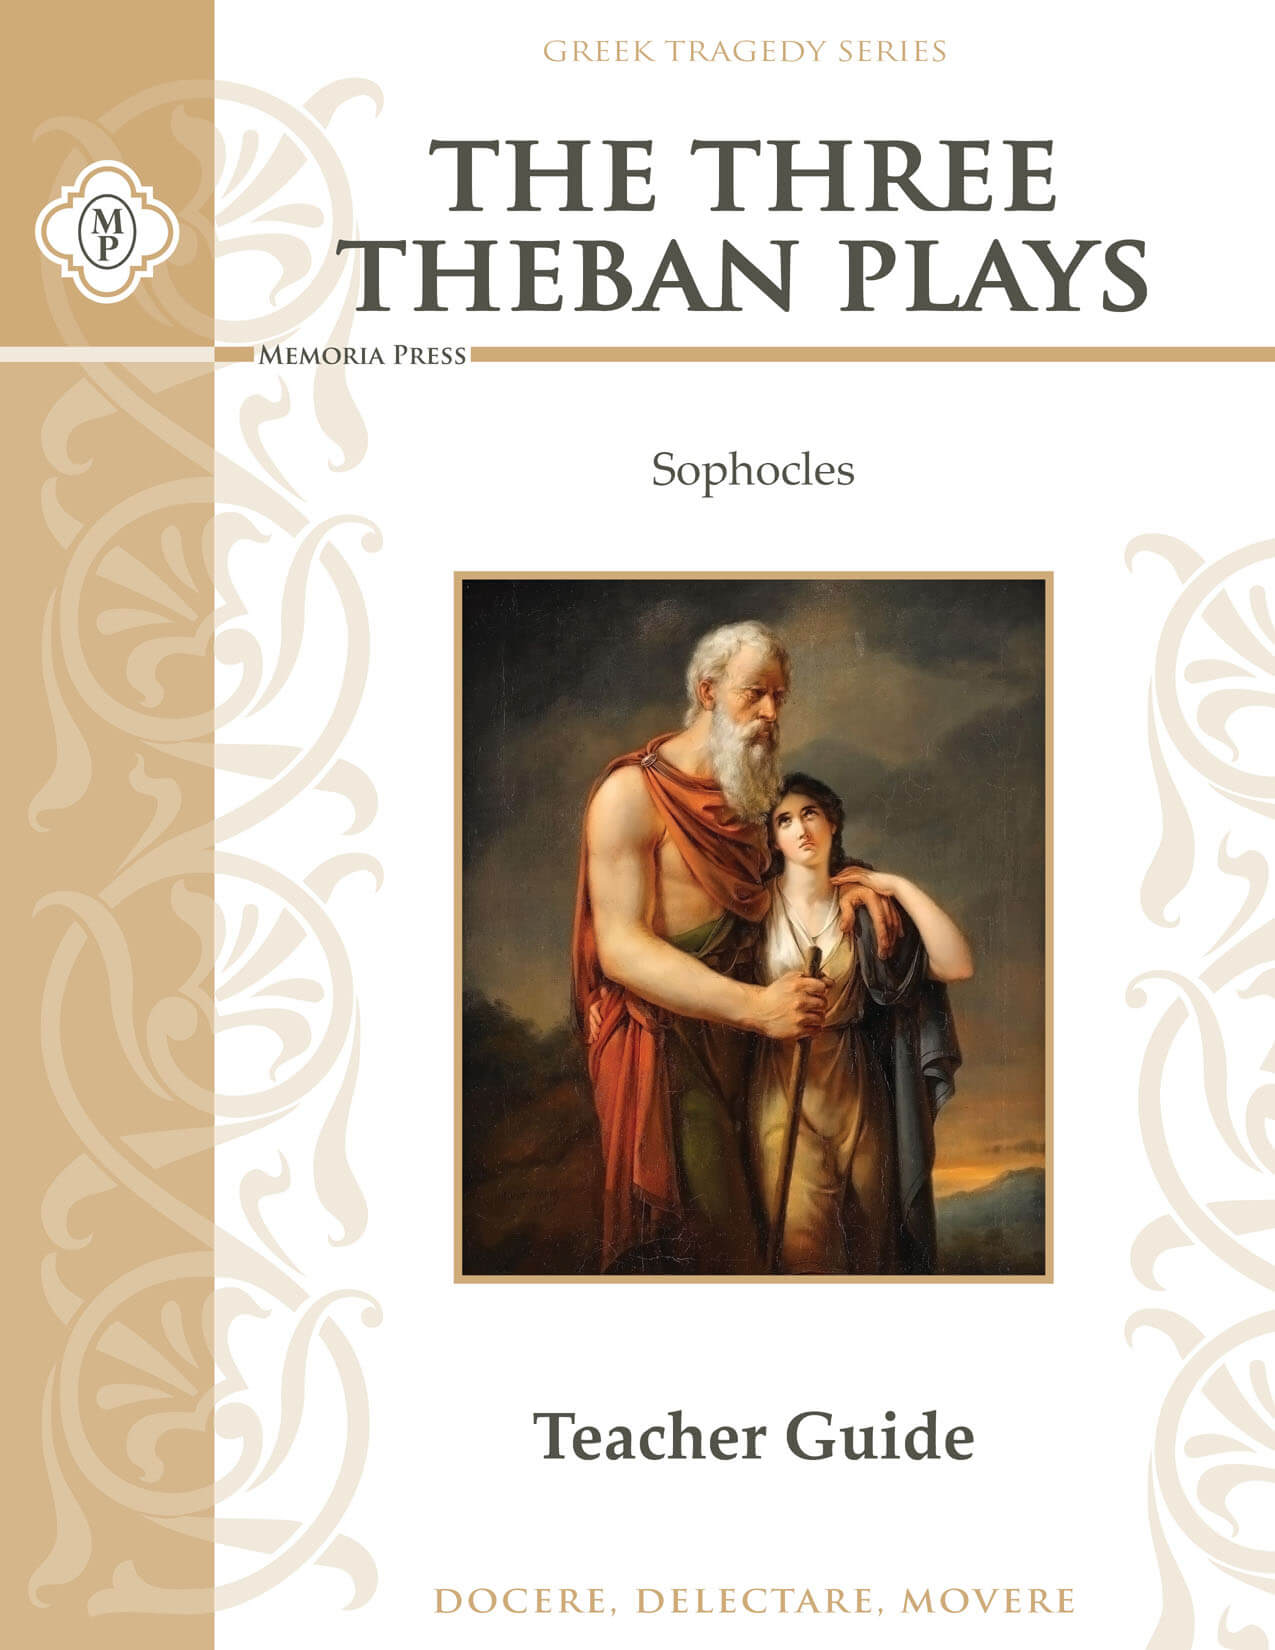 Three Theban Plays By Sophocles Teacher Guide Memoria Press